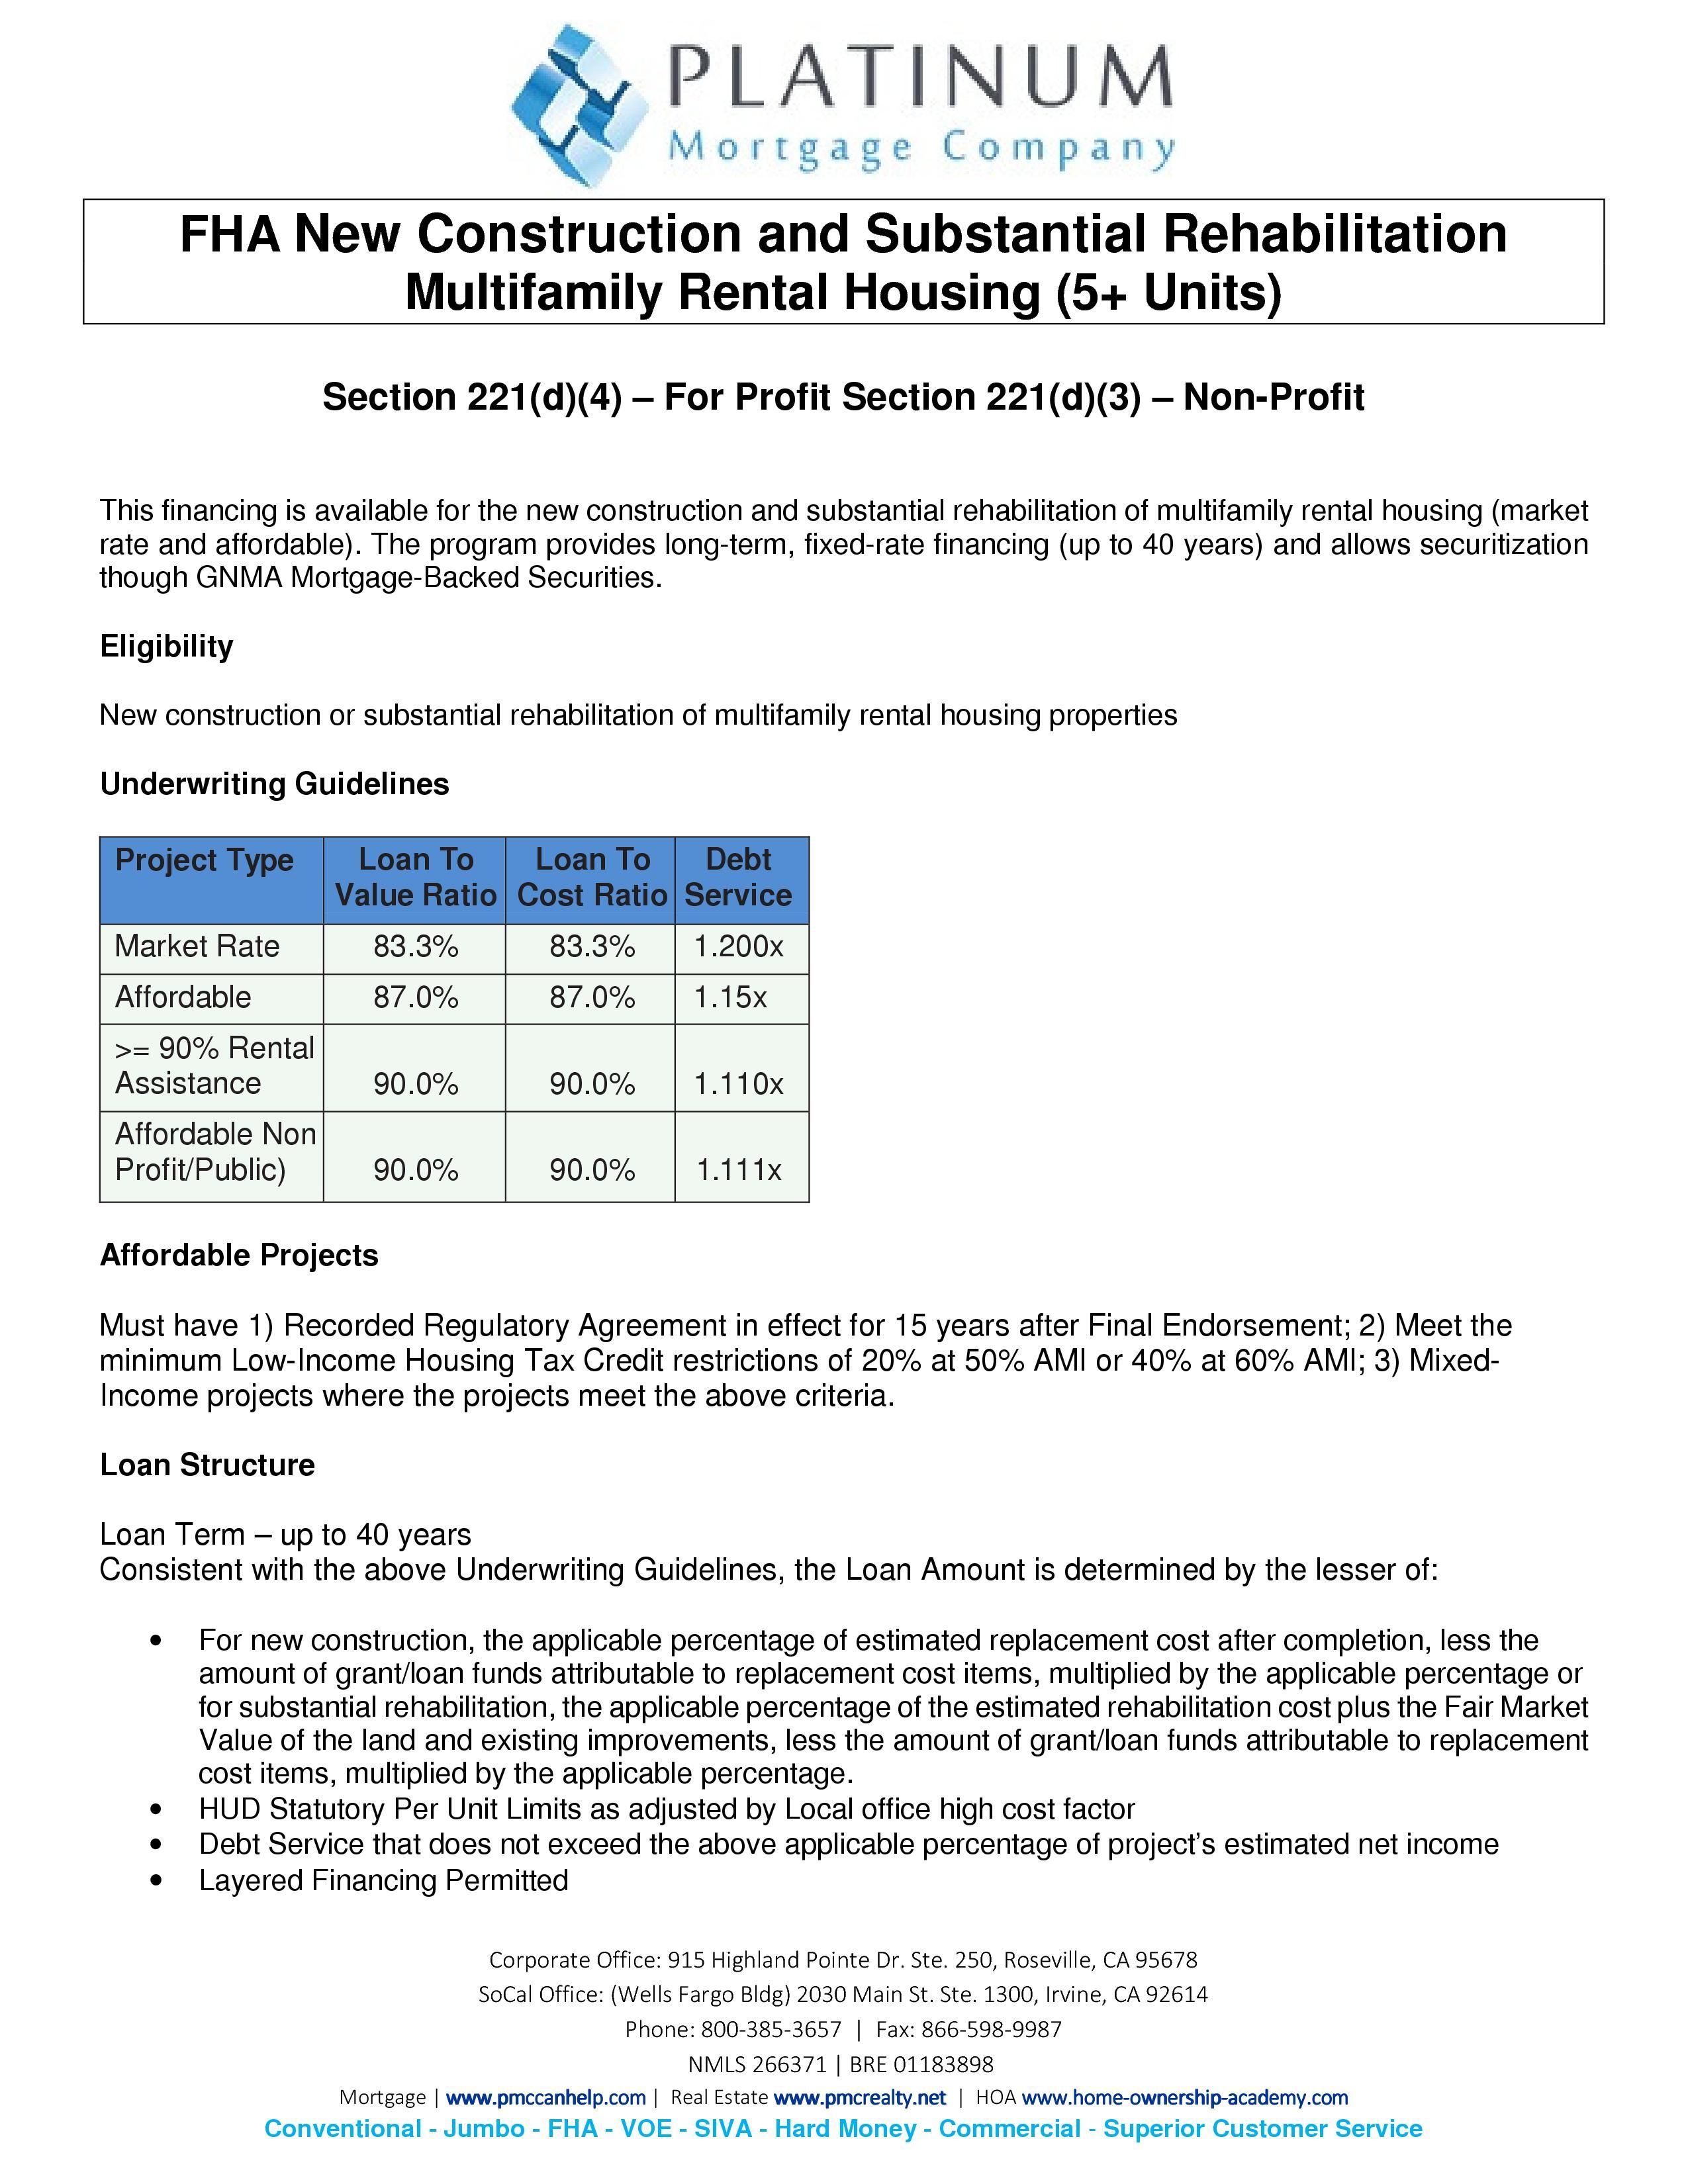 Fha multifamily construction or rehab loans not for profit